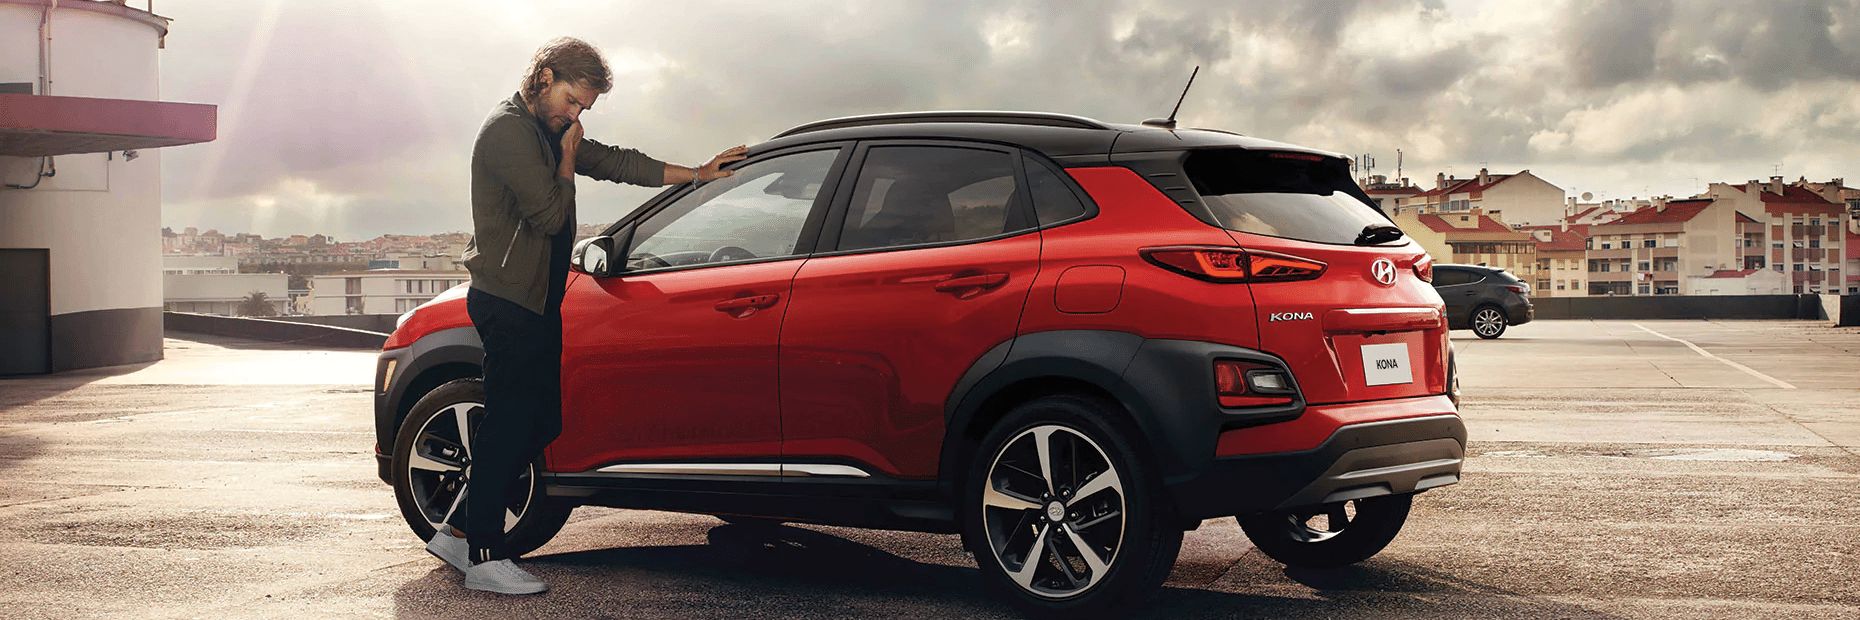 New Red Hyundai Kona with man